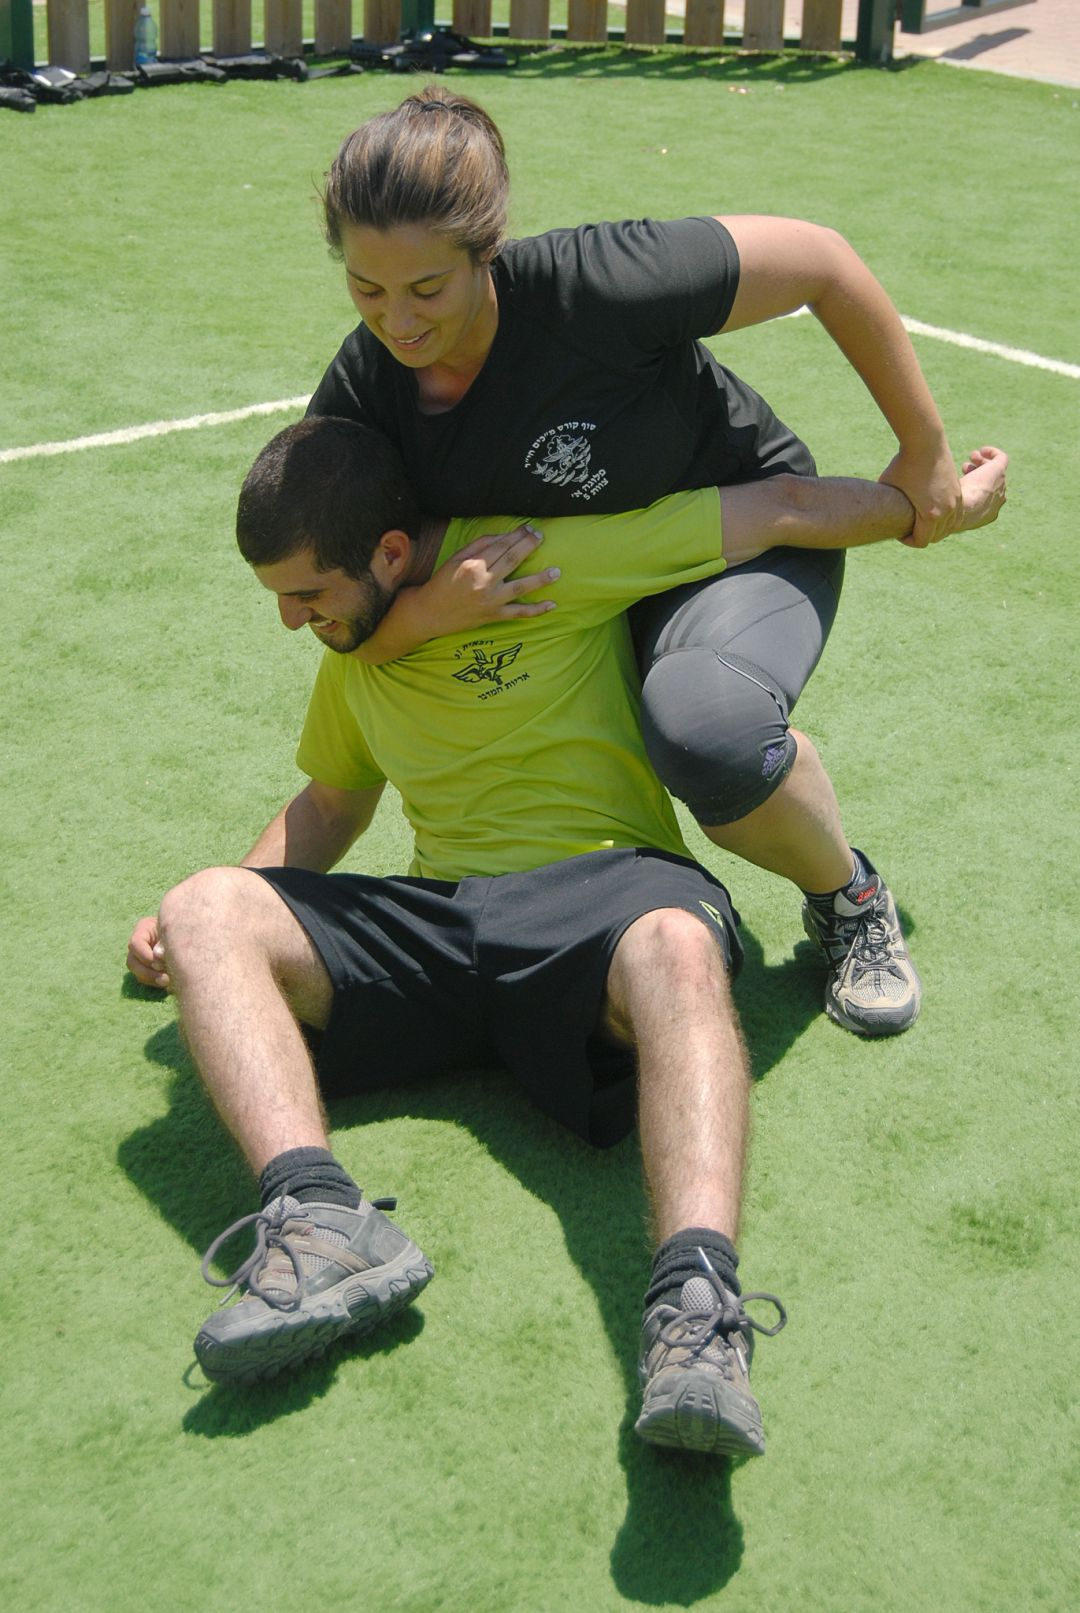 Men and women of the IDF's mixed-gender unit practice Krav Maga, an advanced form of hand-to-hand combat developed in Israel. (Photo Credit: Cpl. Judah Ari Gross, IDF Spokesperson's Unit)